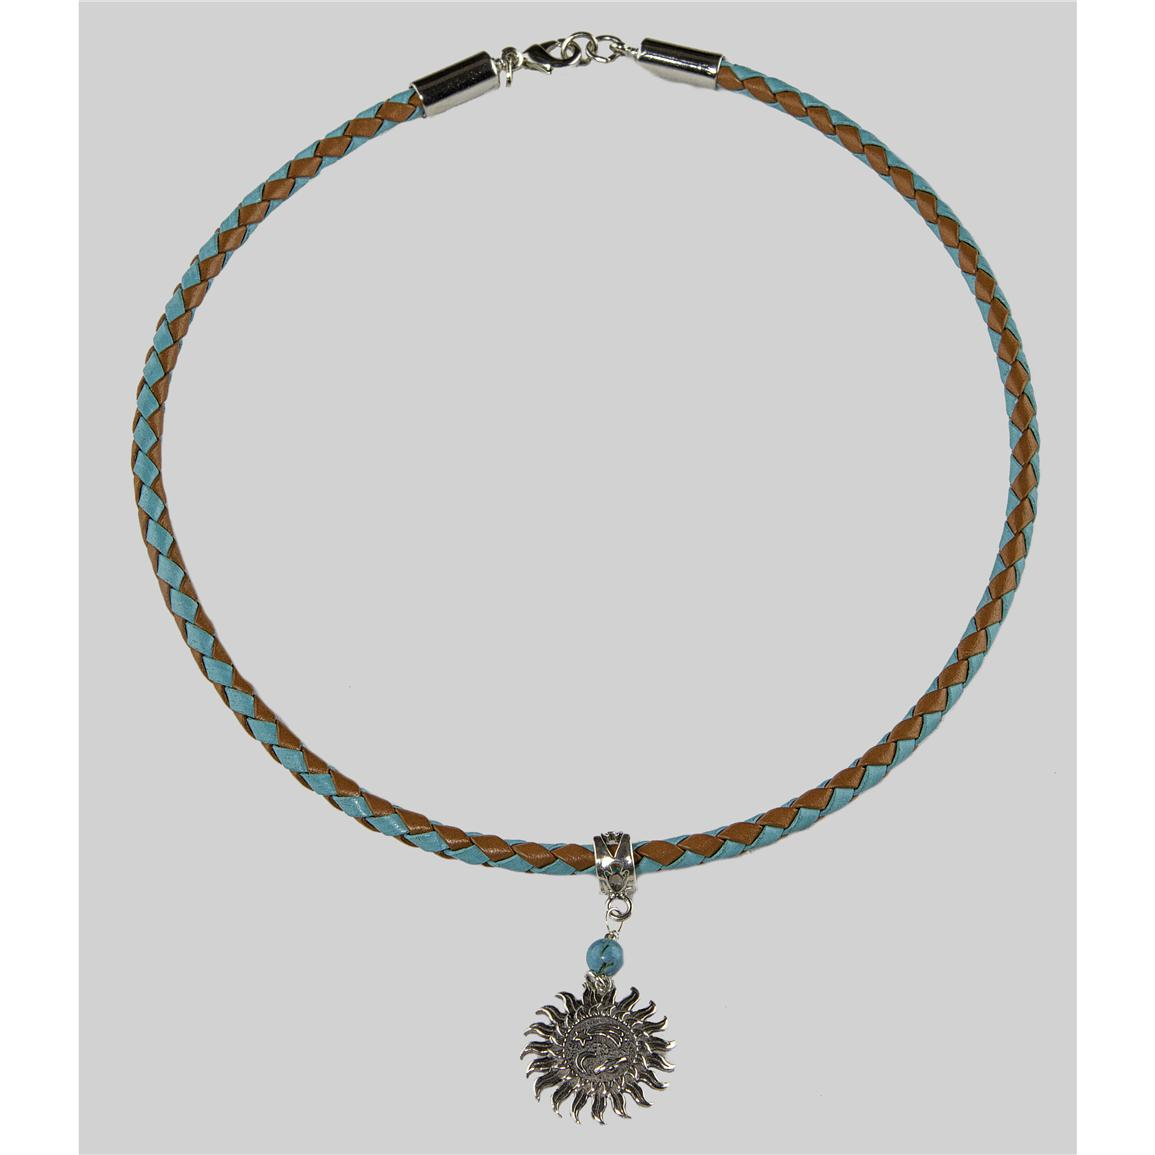 Laura Ingalls Designs™ Sun with Moon on Turquoise and Saddle Braided Necklace